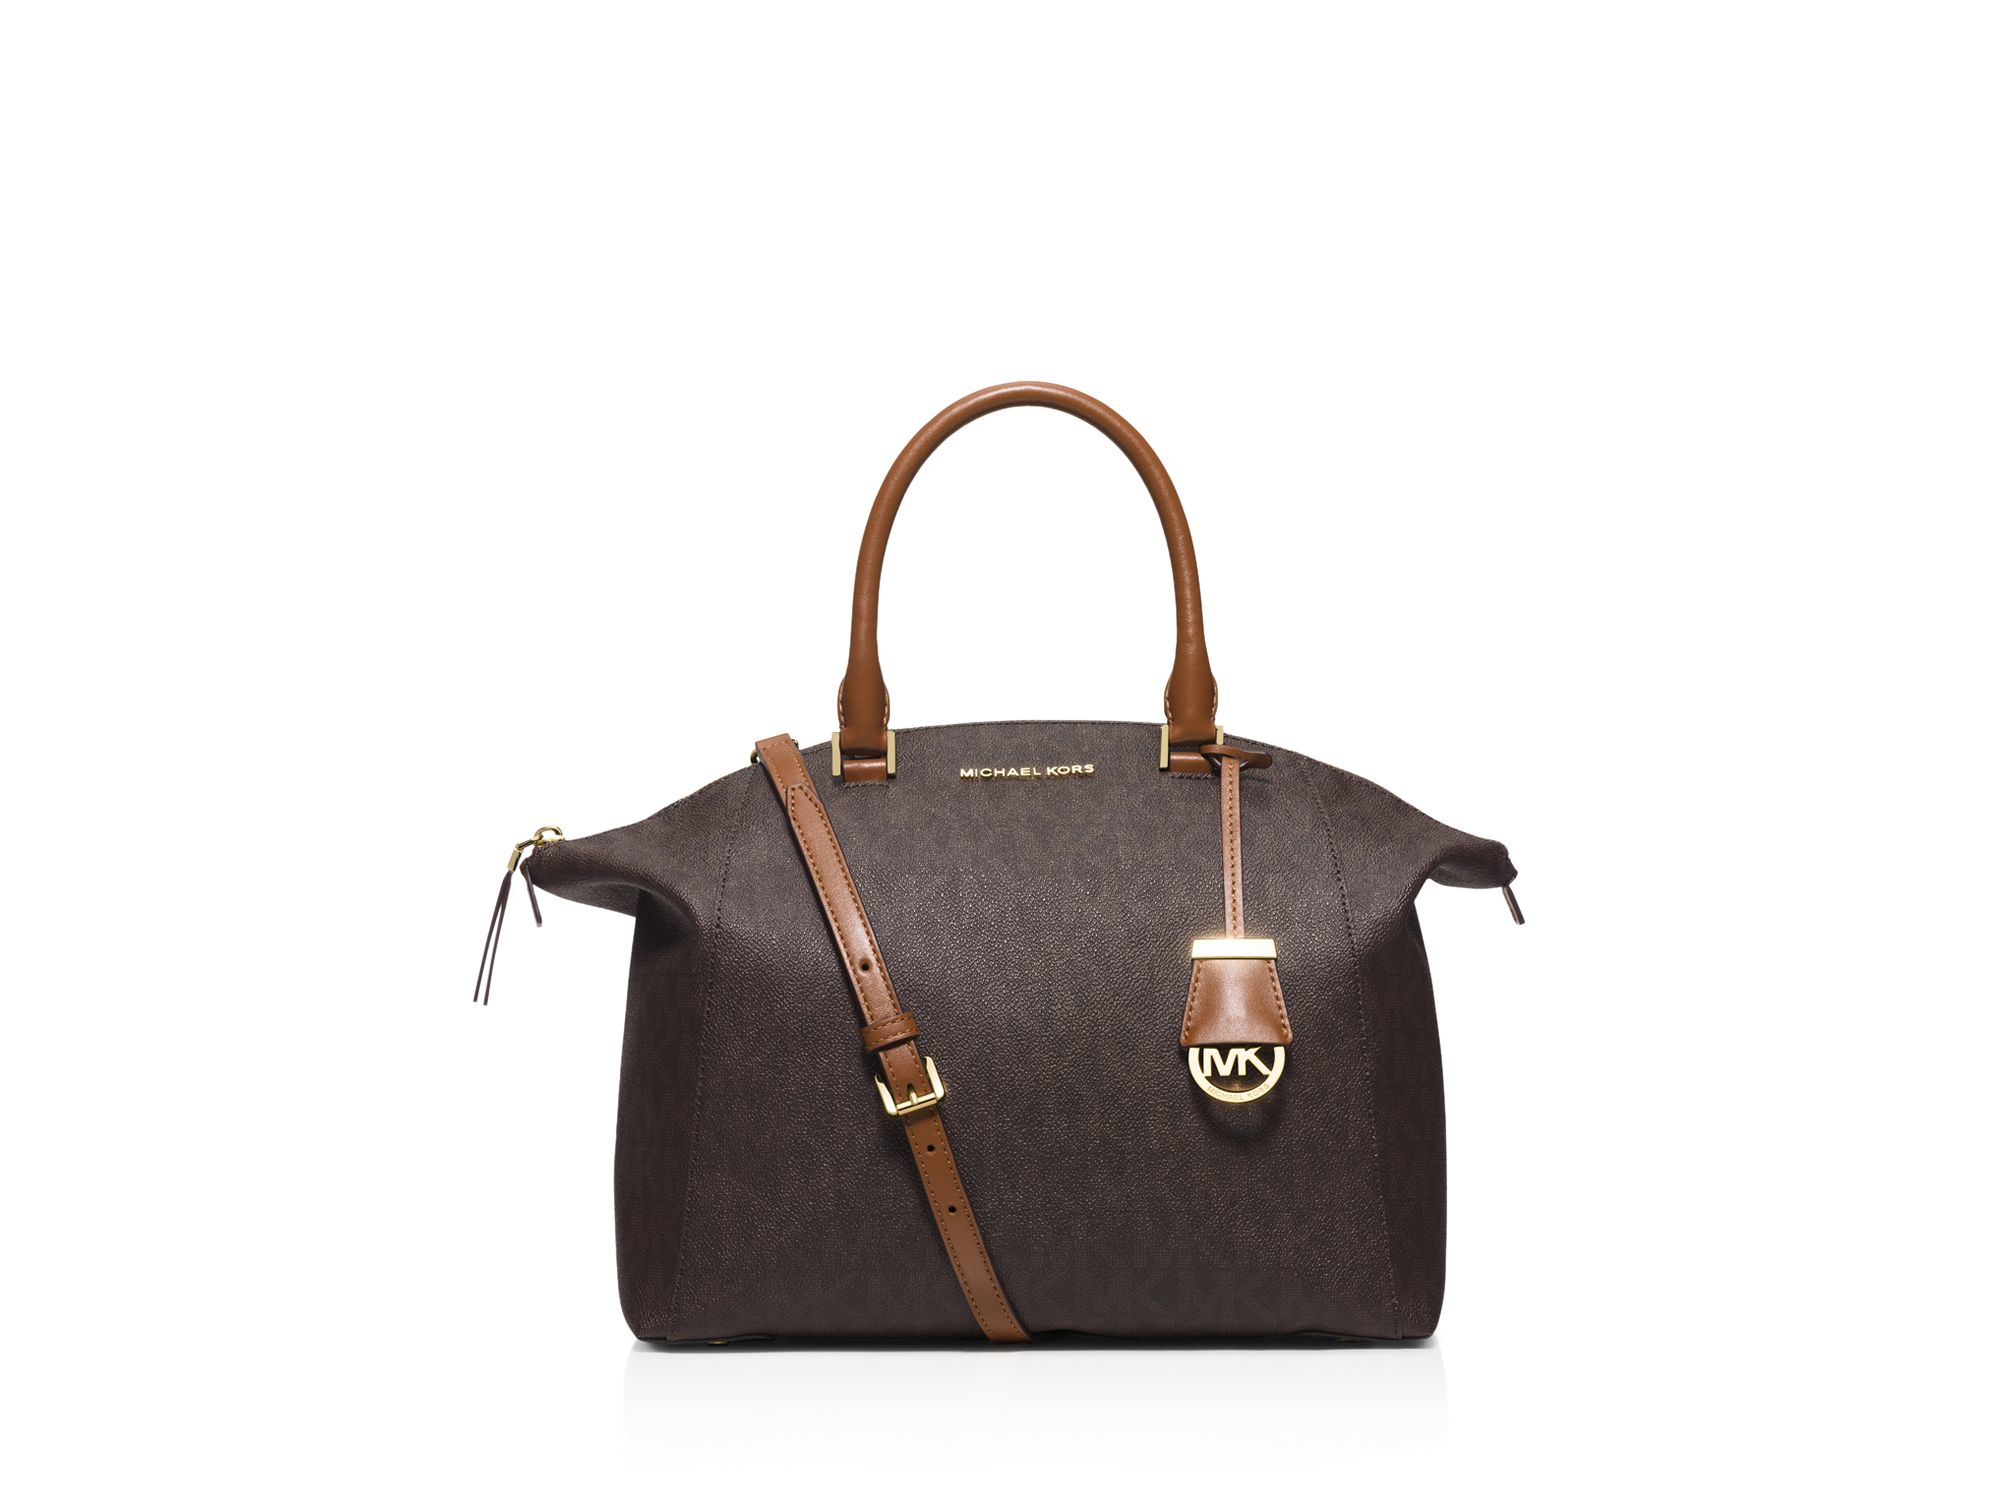 ... cheap lyst michael michael kors large riley mk shadow satchel in brown  15a41 2f0df 442e838c0f3